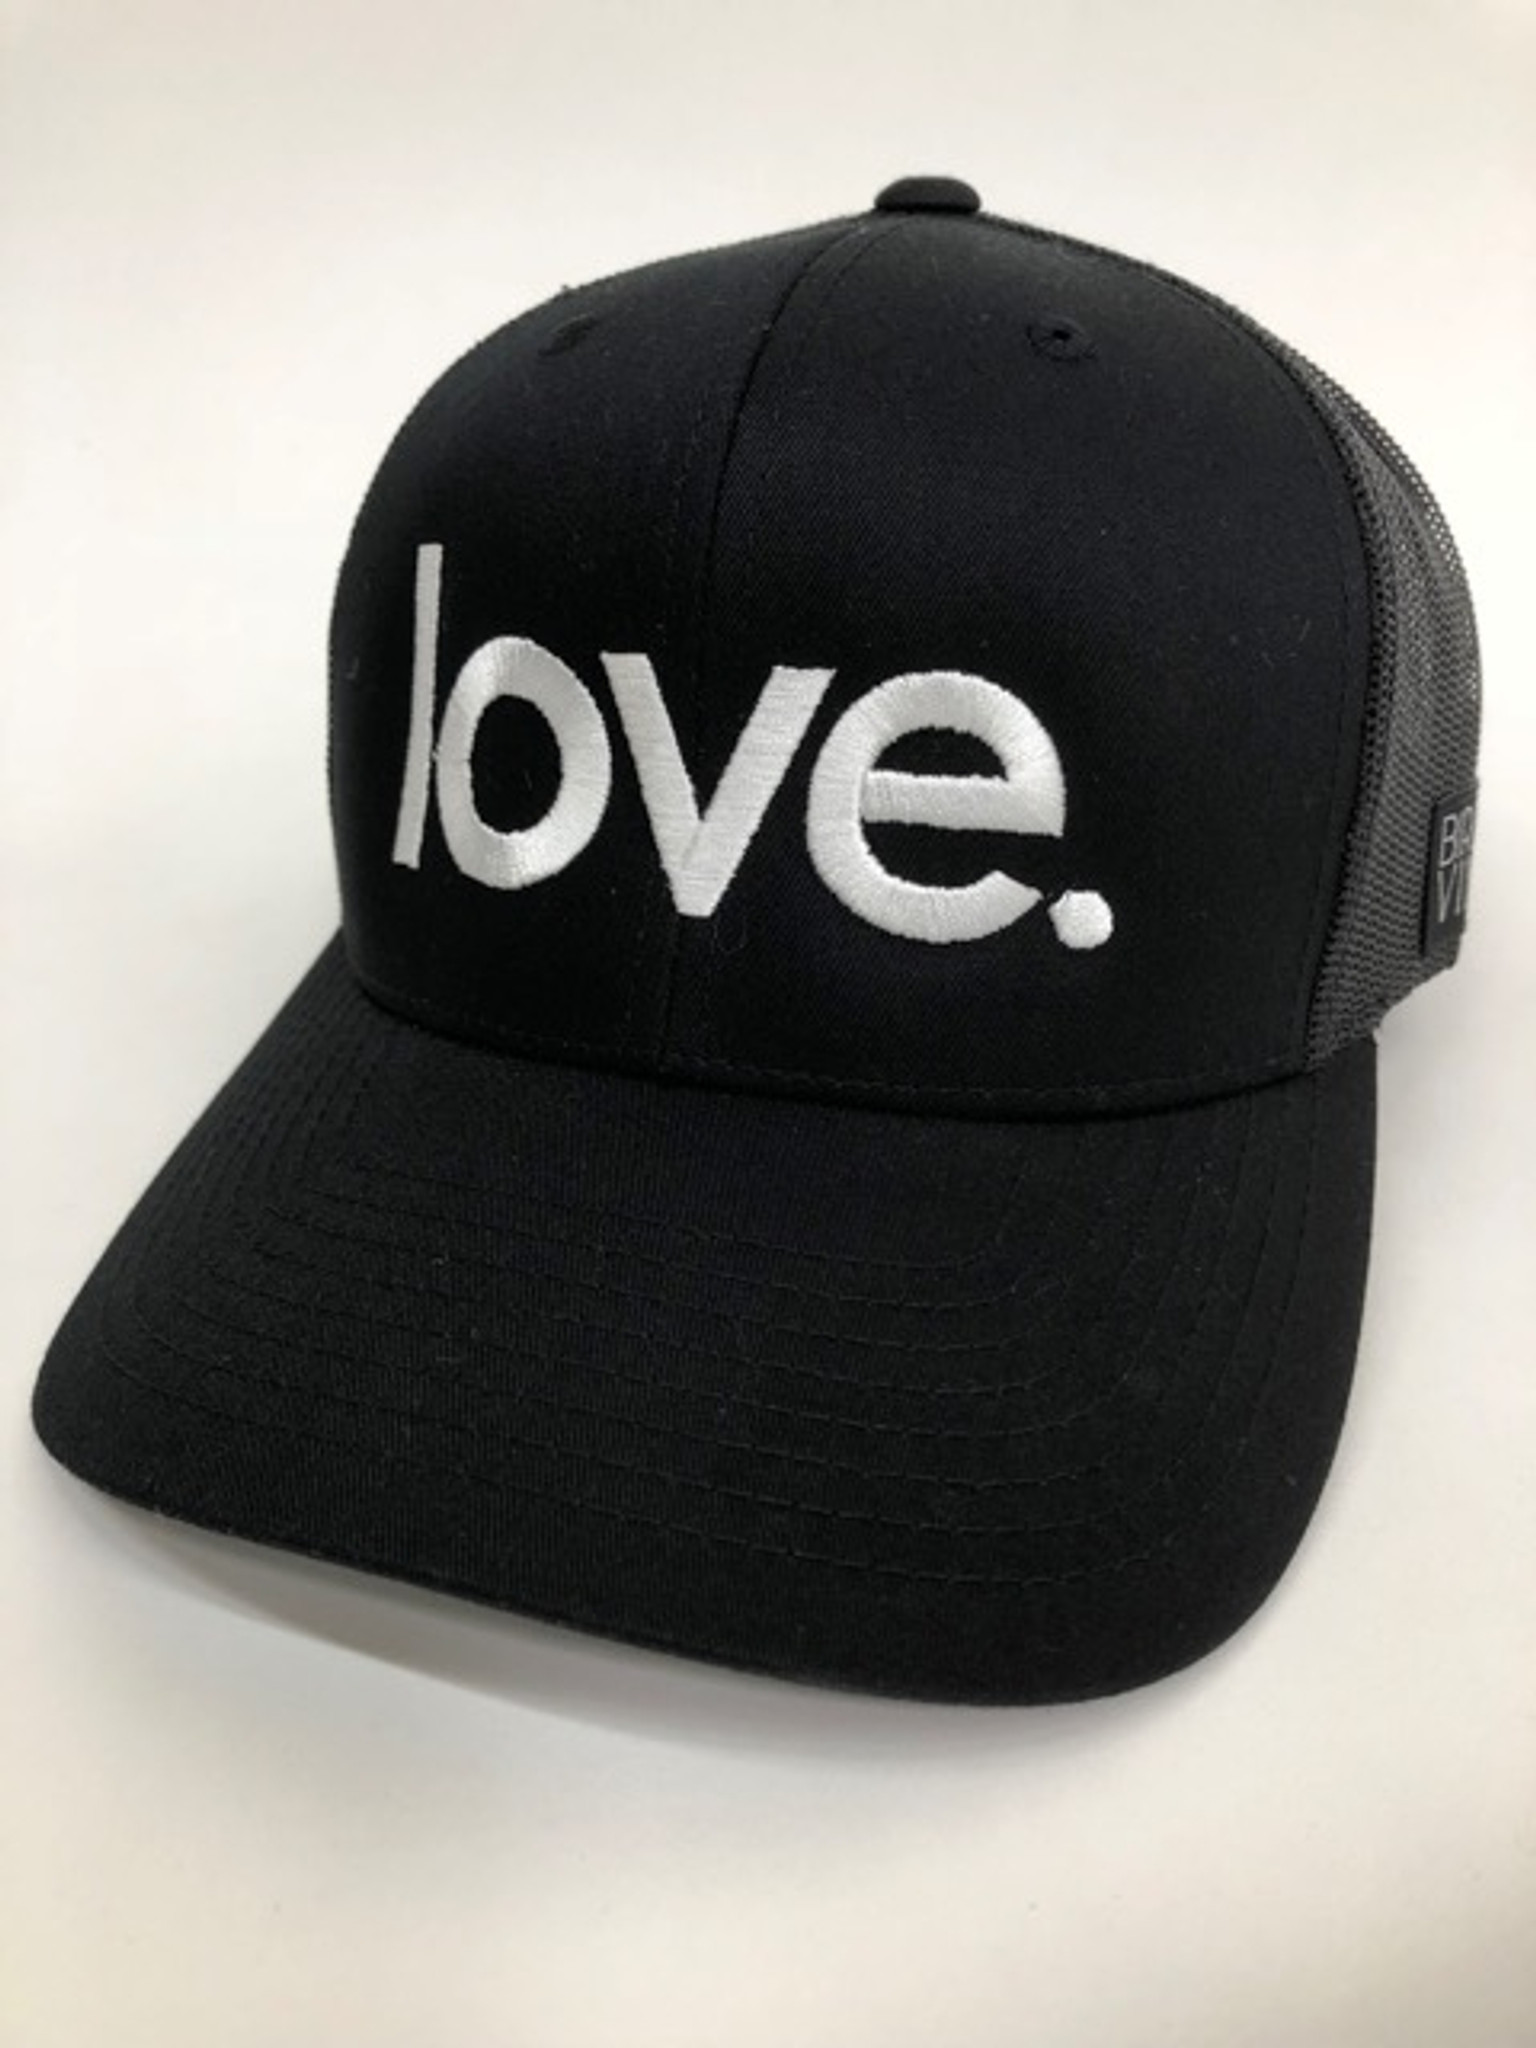 LOVE. EMBROIDERED TRUCKER HAT